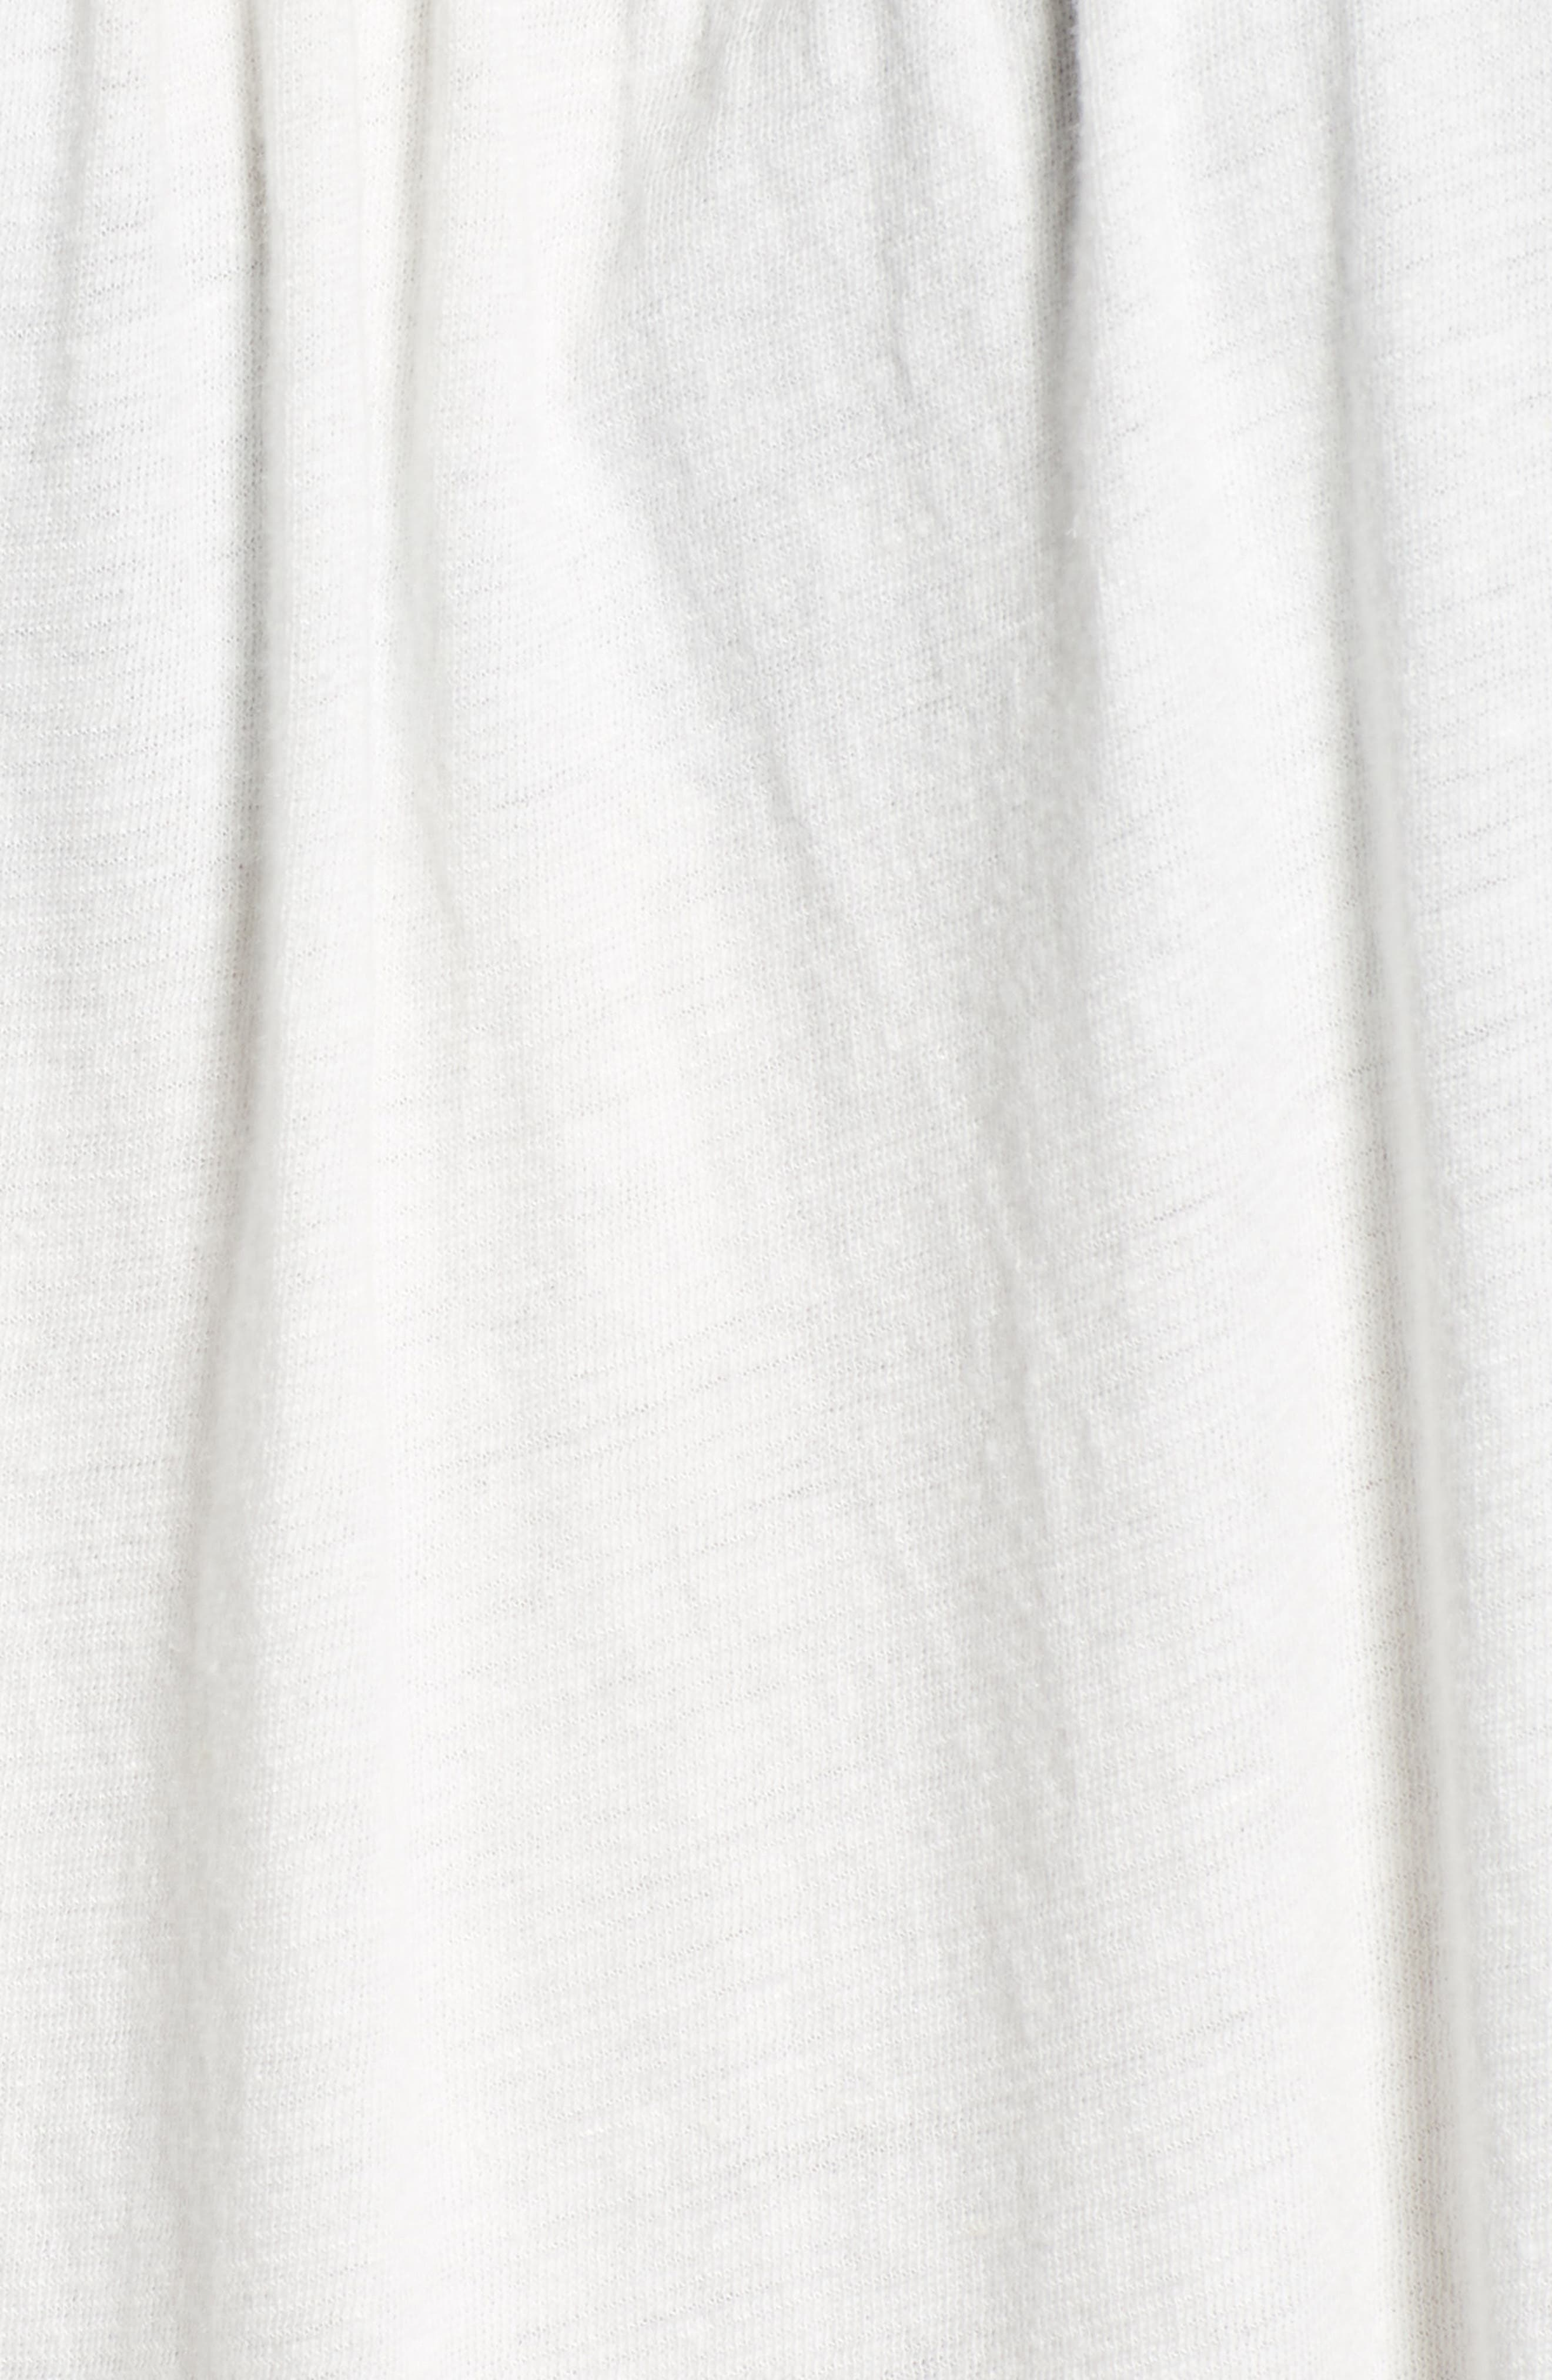 LUCKY BRAND,                             Embroidered Yoke Peasant Top,                             Alternate thumbnail 5, color,                             LUCKY WHITE